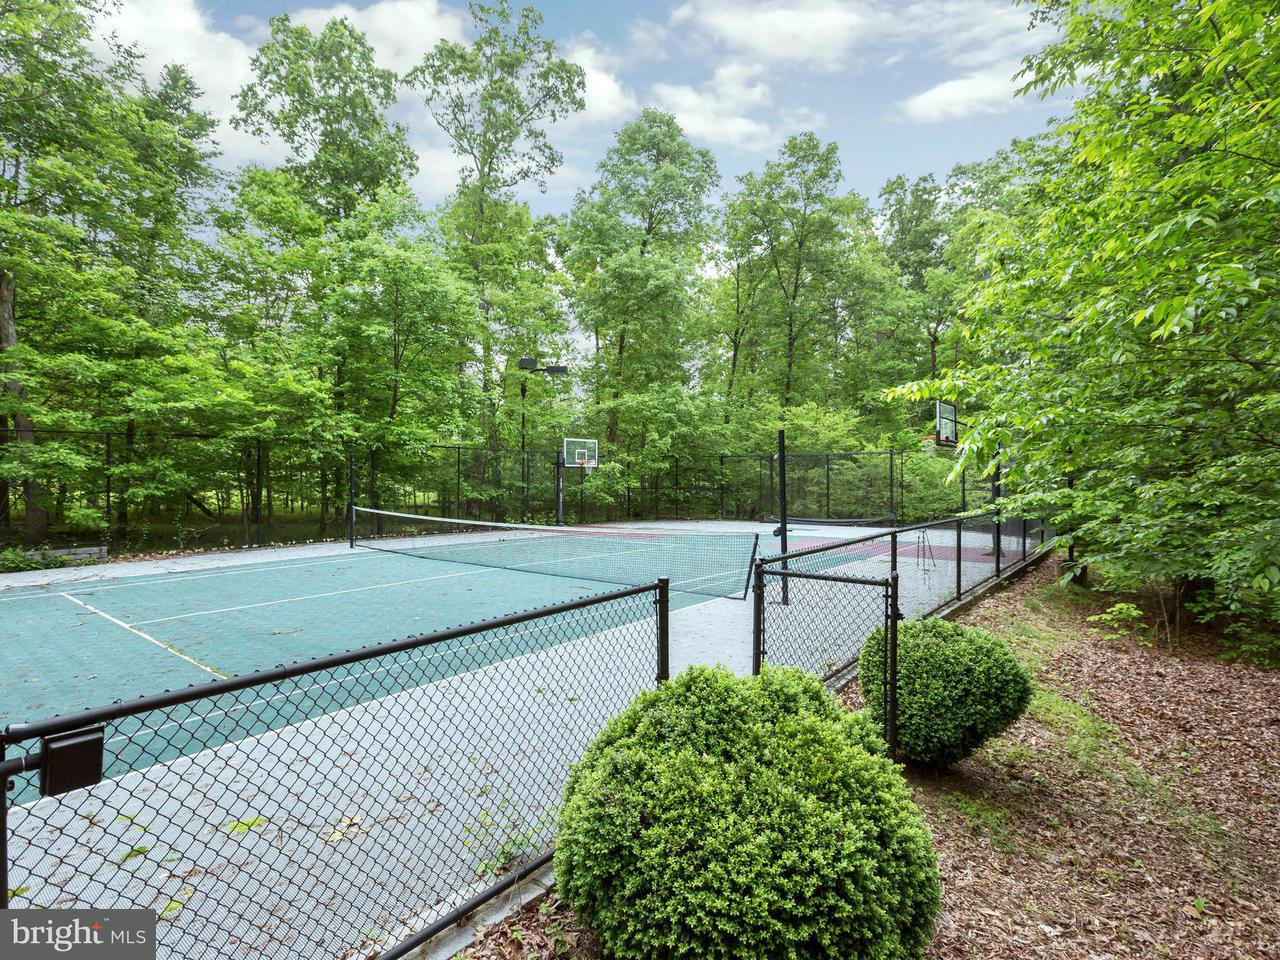 Additional photo for property listing at 13768 Balmoral Greens Ave  Clifton, Virginia 20124 United States